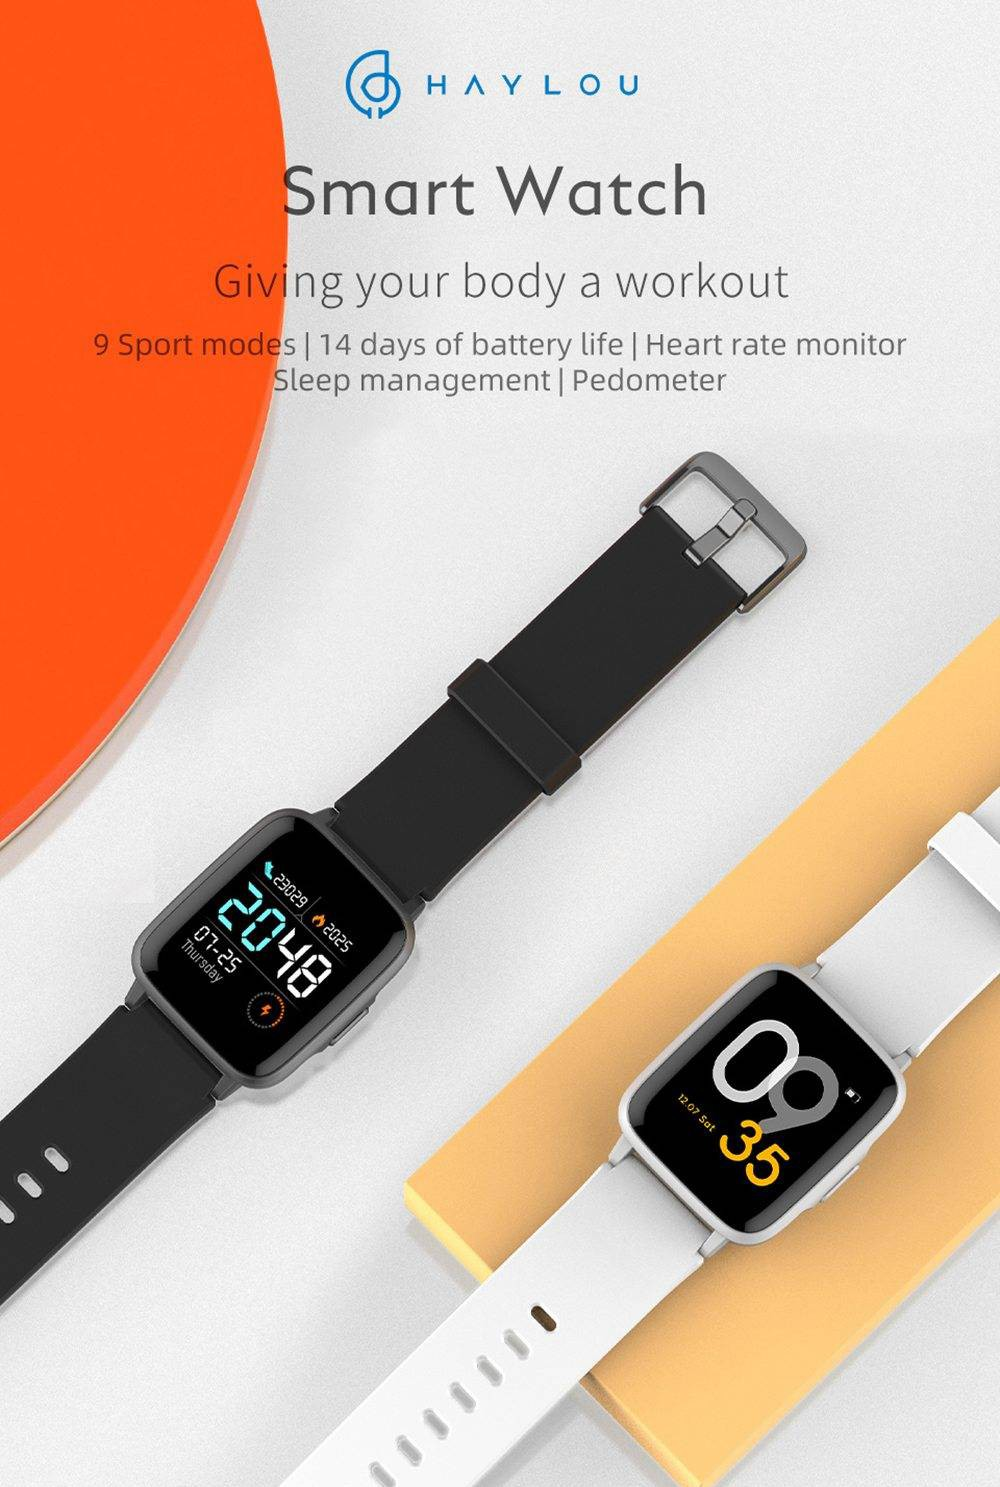 Haylou LS01 24H Heart Rate Monitor BT4.2 Smart Watch - Black